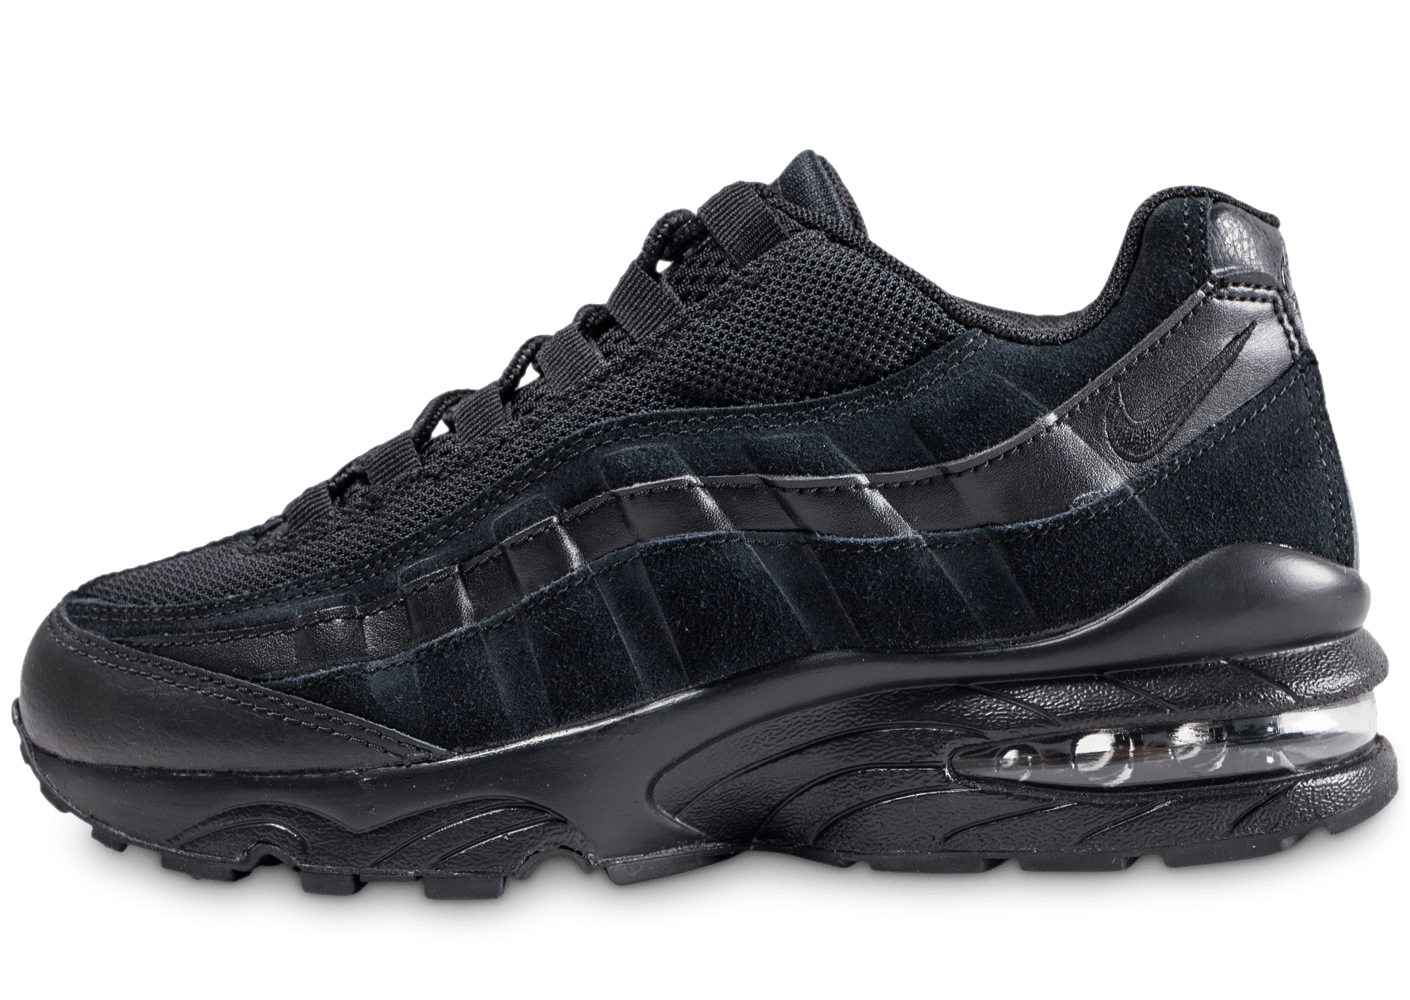 nike air max 95 junior noire chaussures enfant chausport. Black Bedroom Furniture Sets. Home Design Ideas